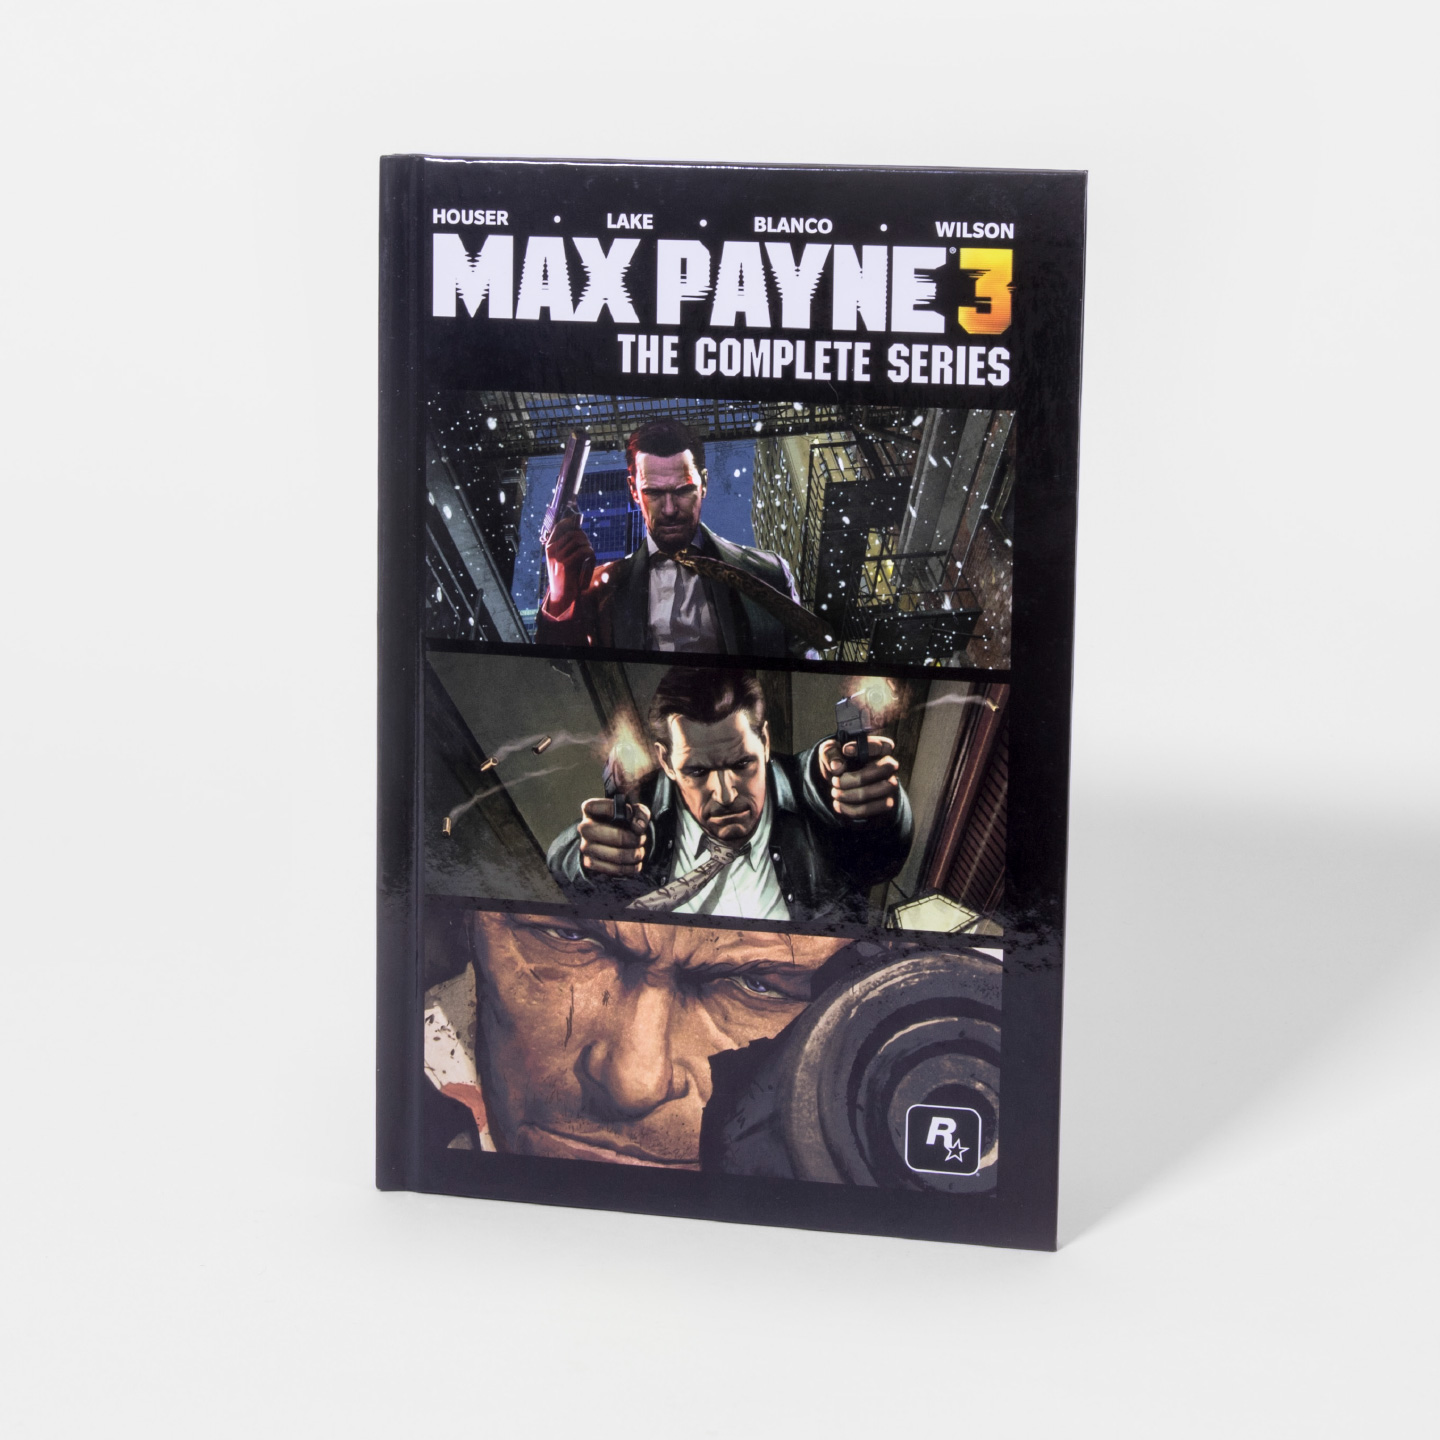 Max Payne 3 Graphic Novel